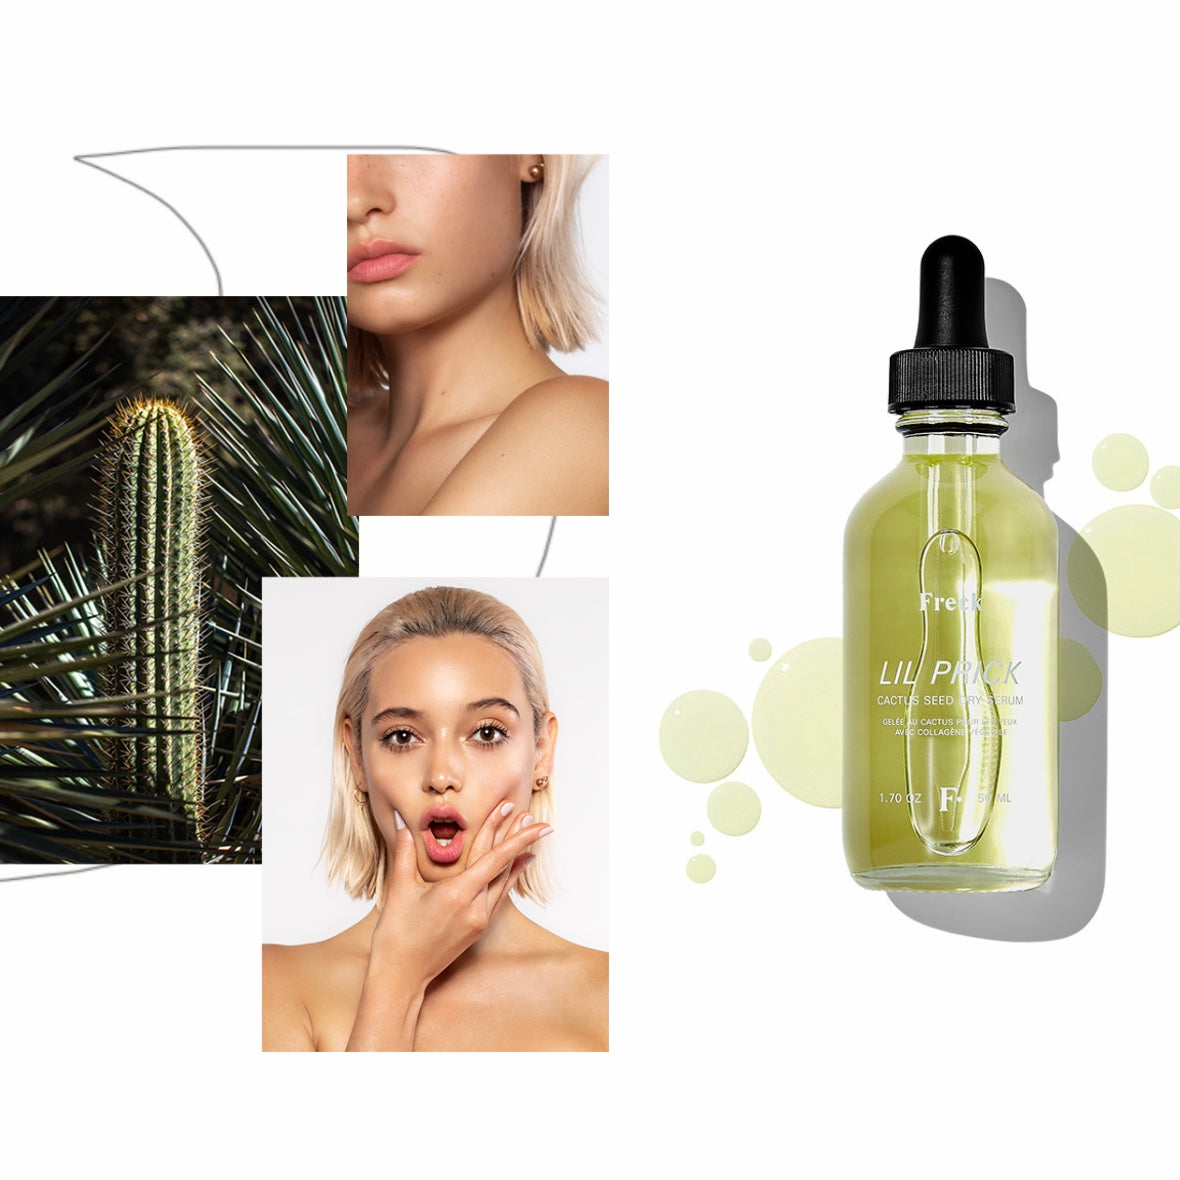 Freck | Freck Lil Prick - Cactus Seed Dry Serum | Bath/Beauty - Face Oil | Phoenix General Store